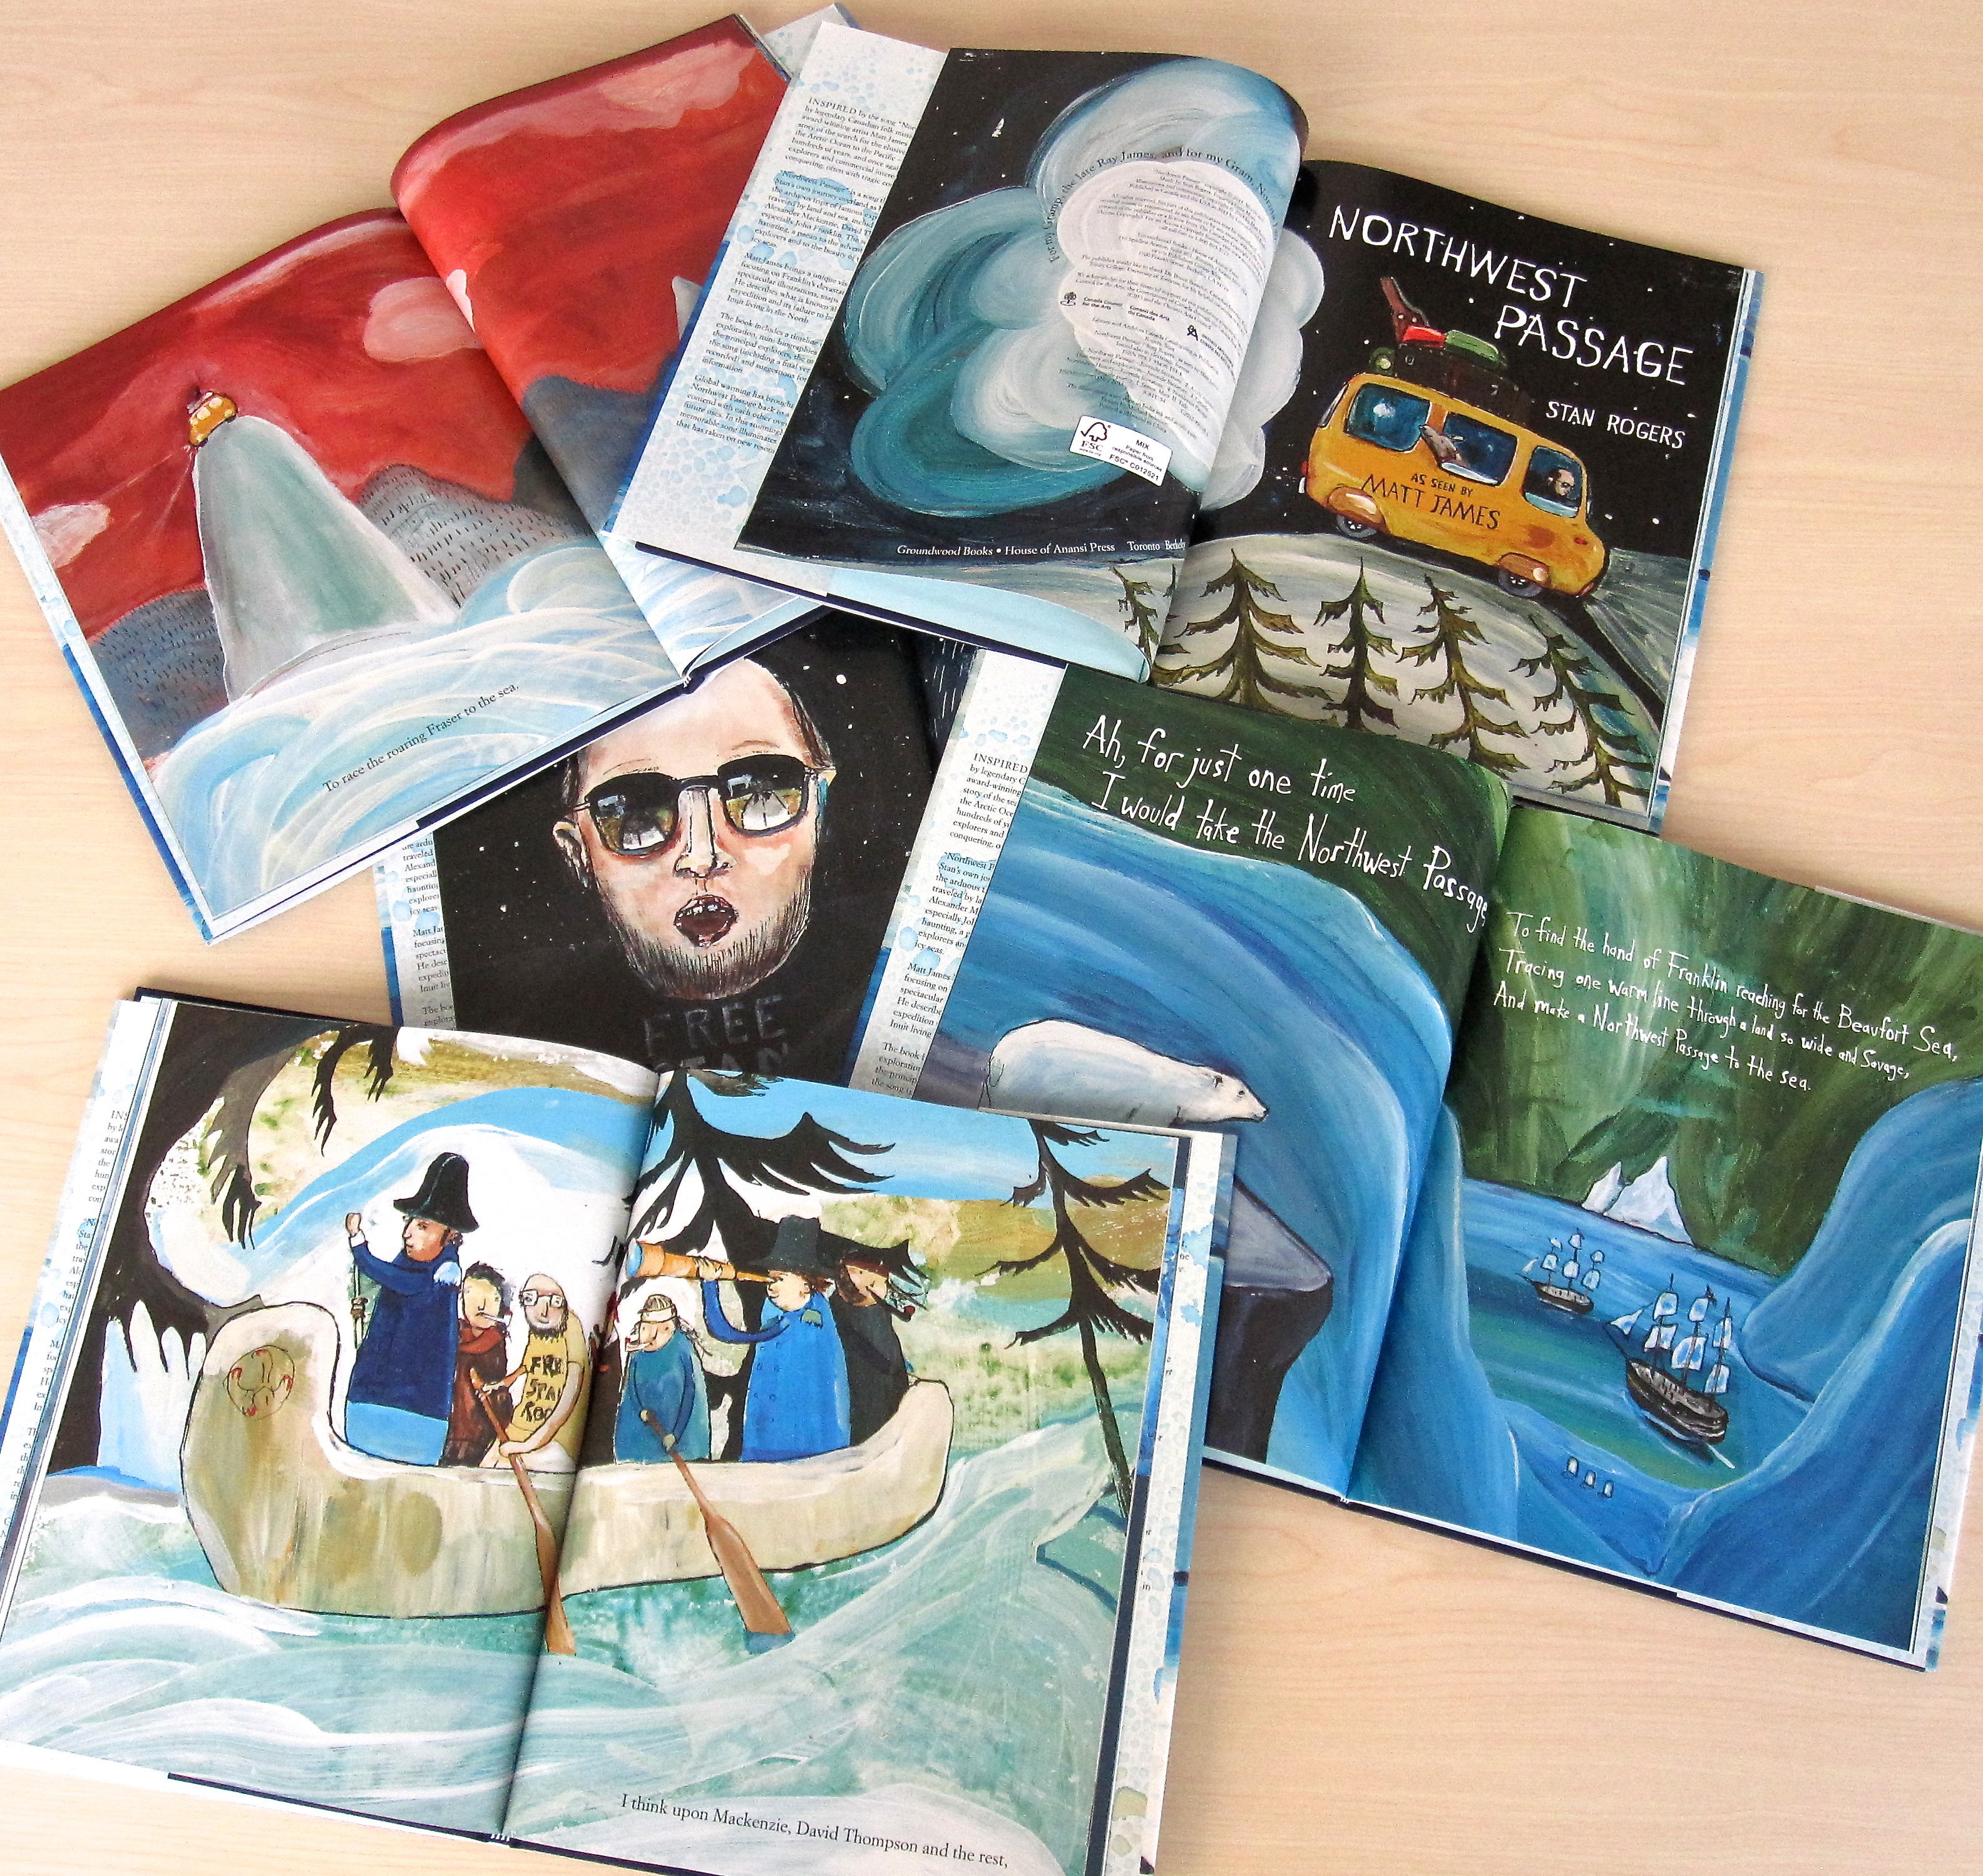 Hot off the press: Northwest Passage by Stan Rogers, with pictures and commentary by Matt James, available September 2013.